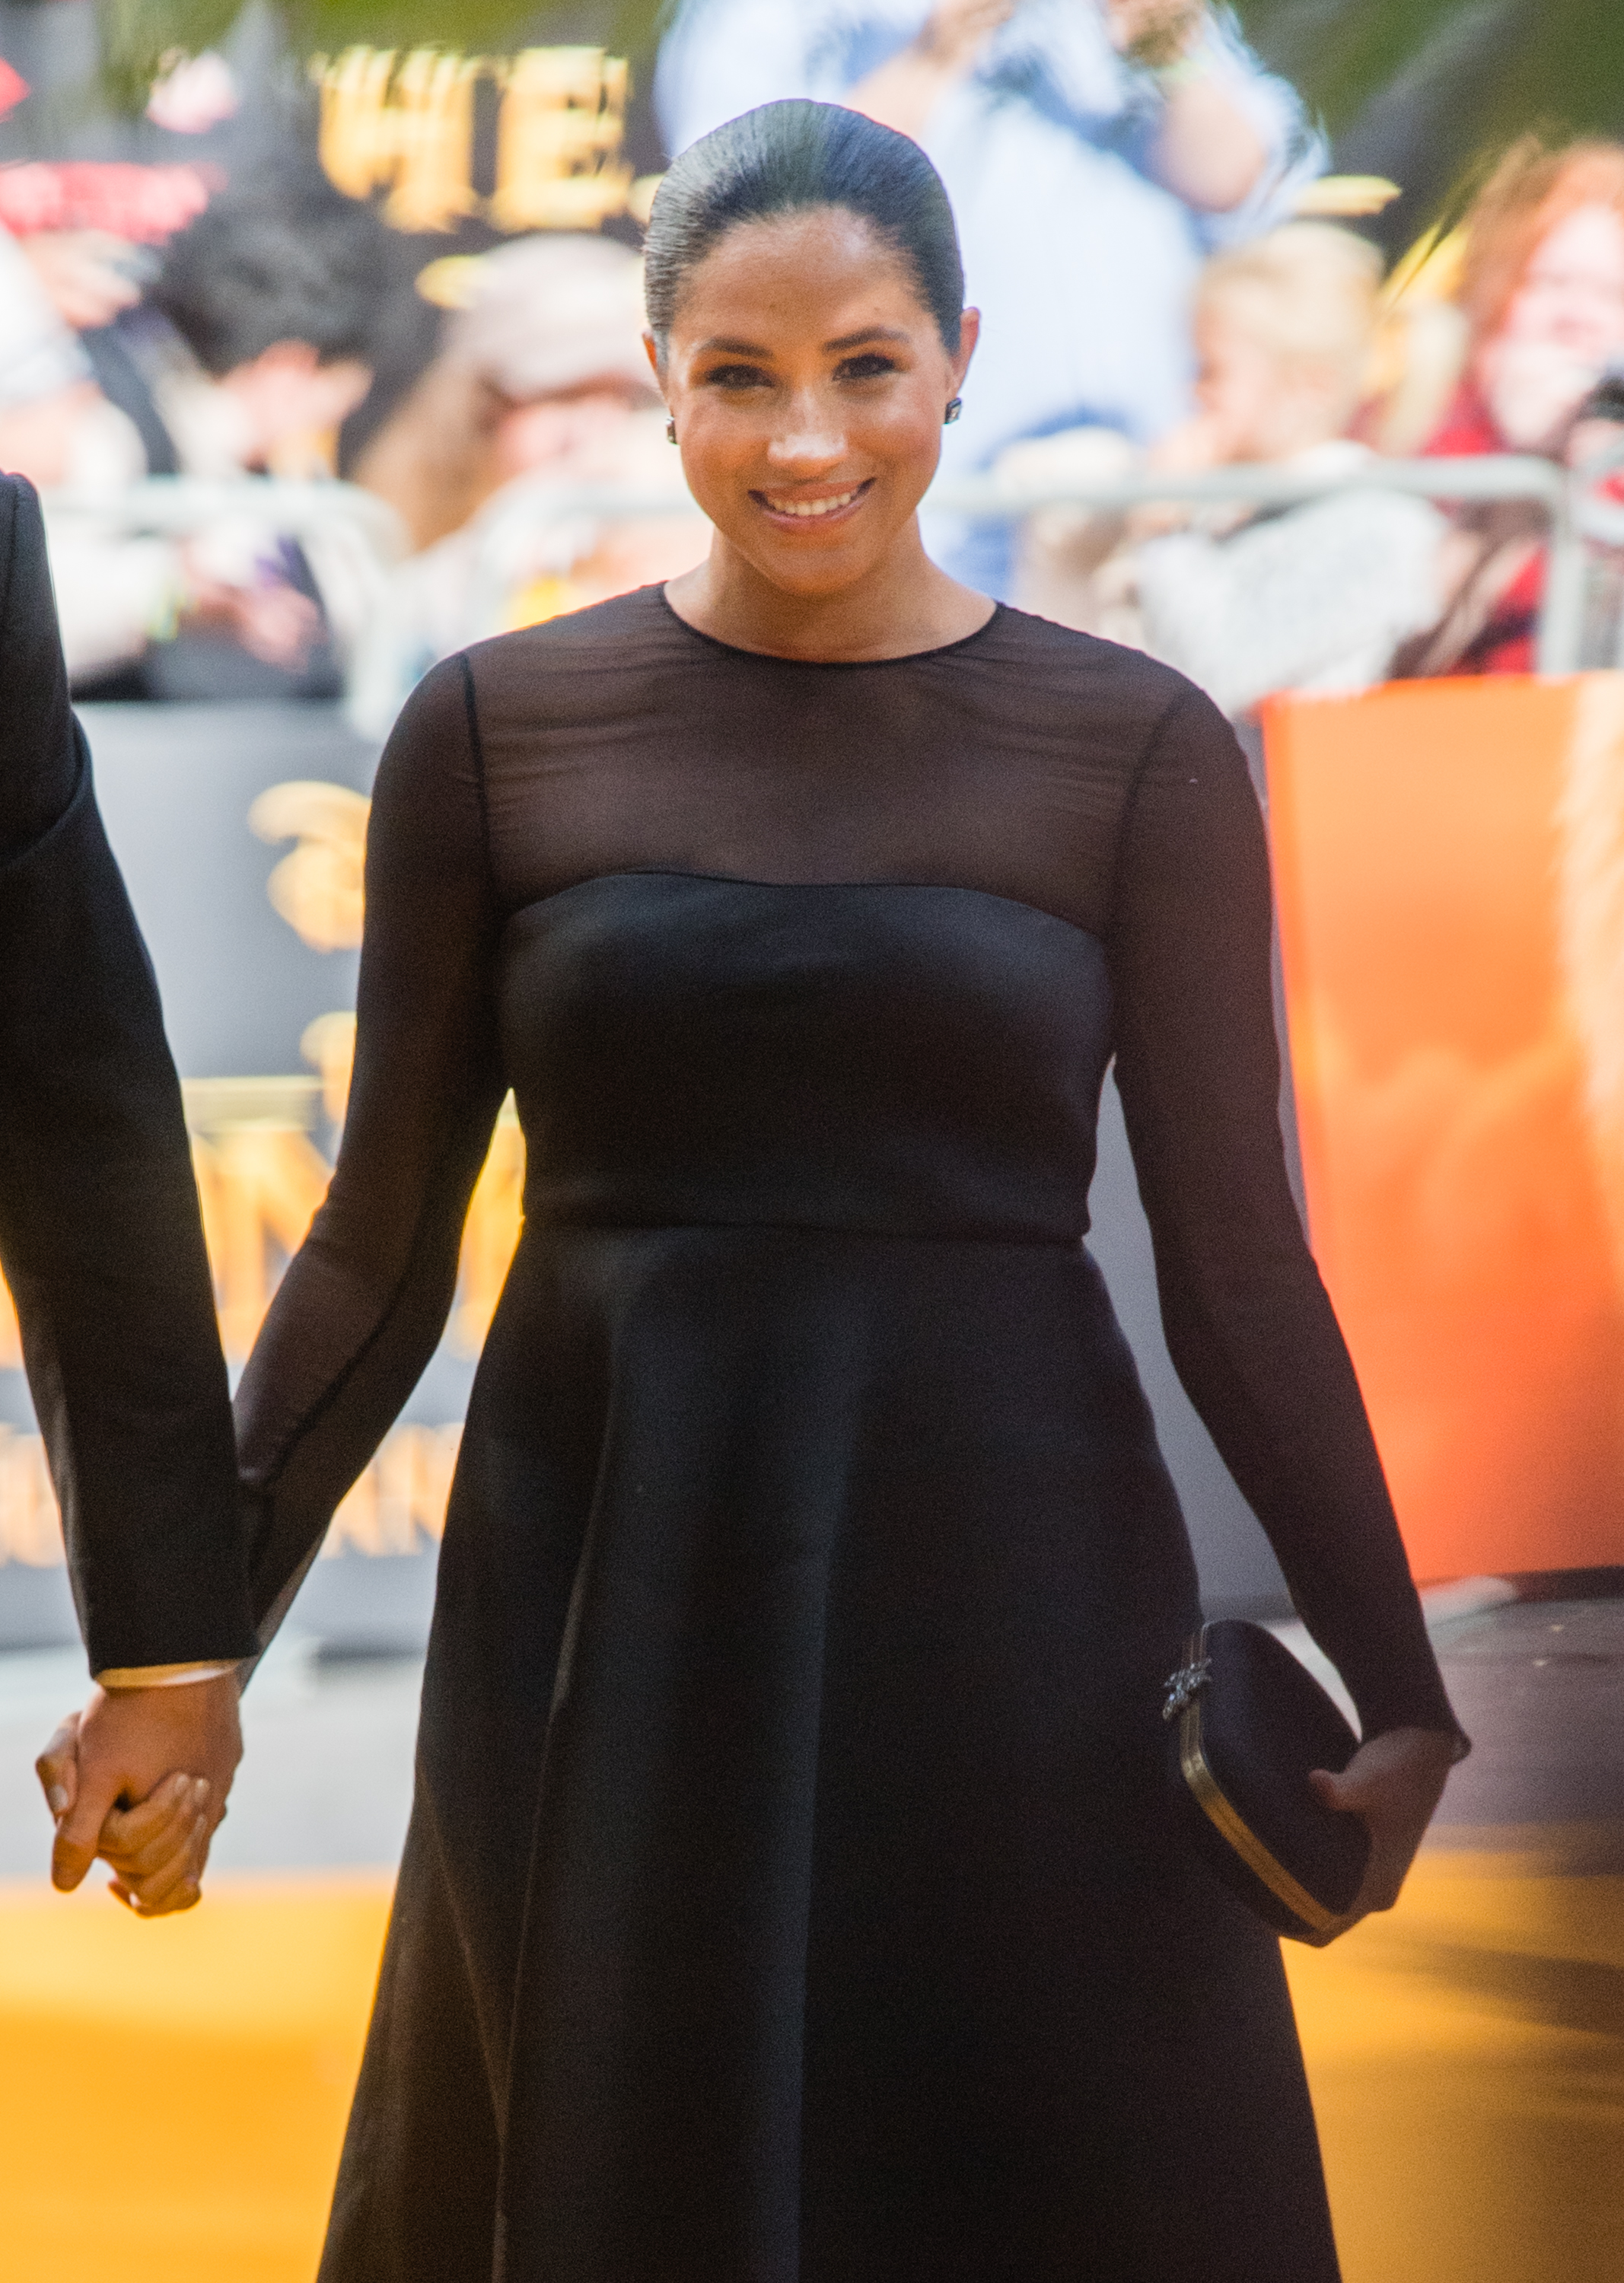 """LONDON, ENGLAND - JULY 14:  Meghan, Duchess of Sussex attends """"The Lion King"""" European Premiere at Leicester Square on July 14, 2019 in London, England. (Photo by Samir Hussein/WireImage)"""